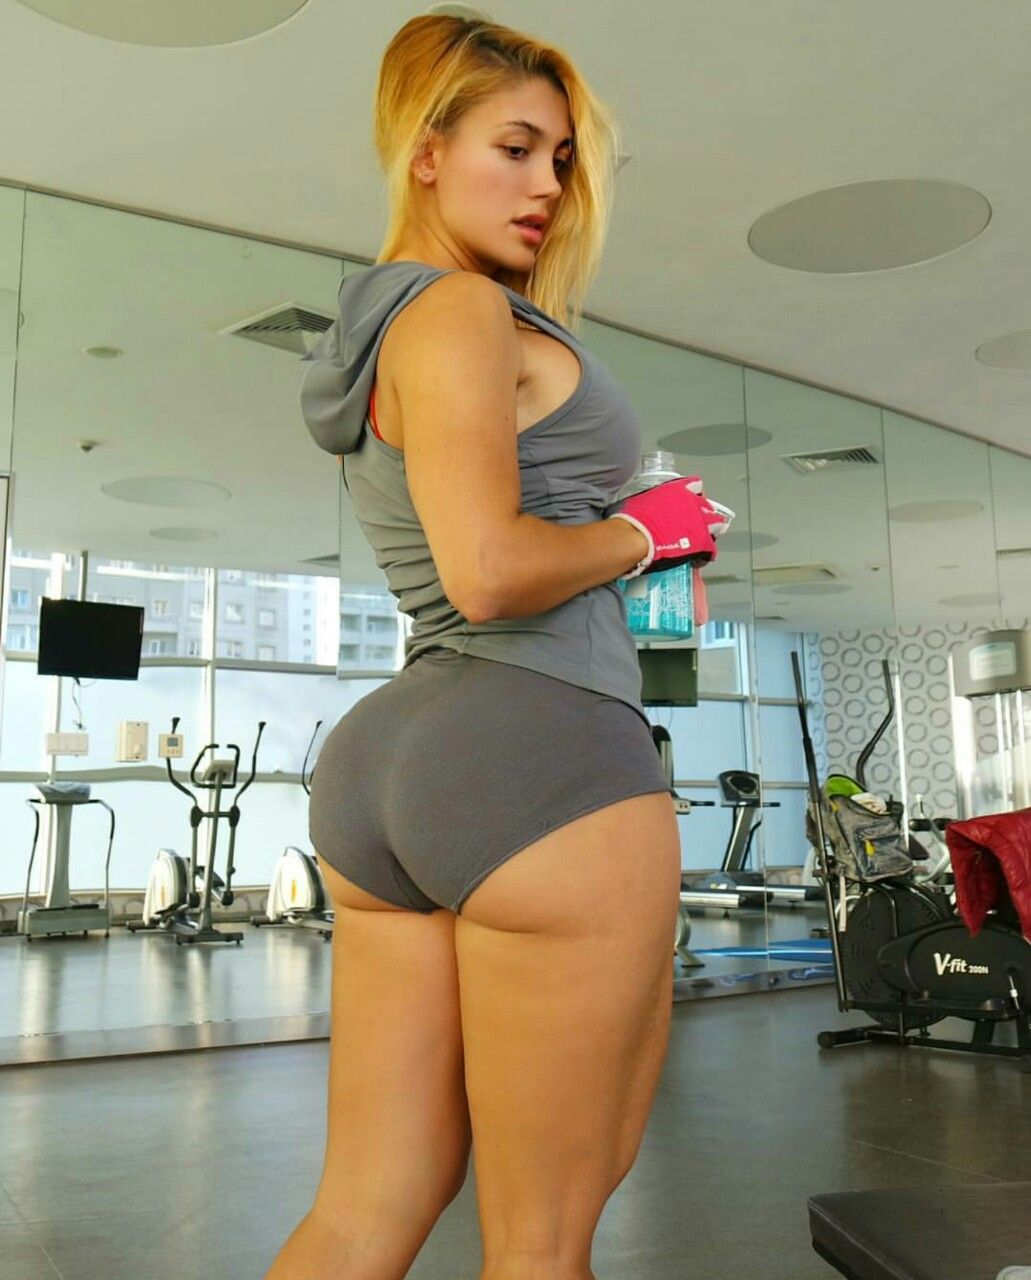 """sexxxyfitness: """"big and fit """" 